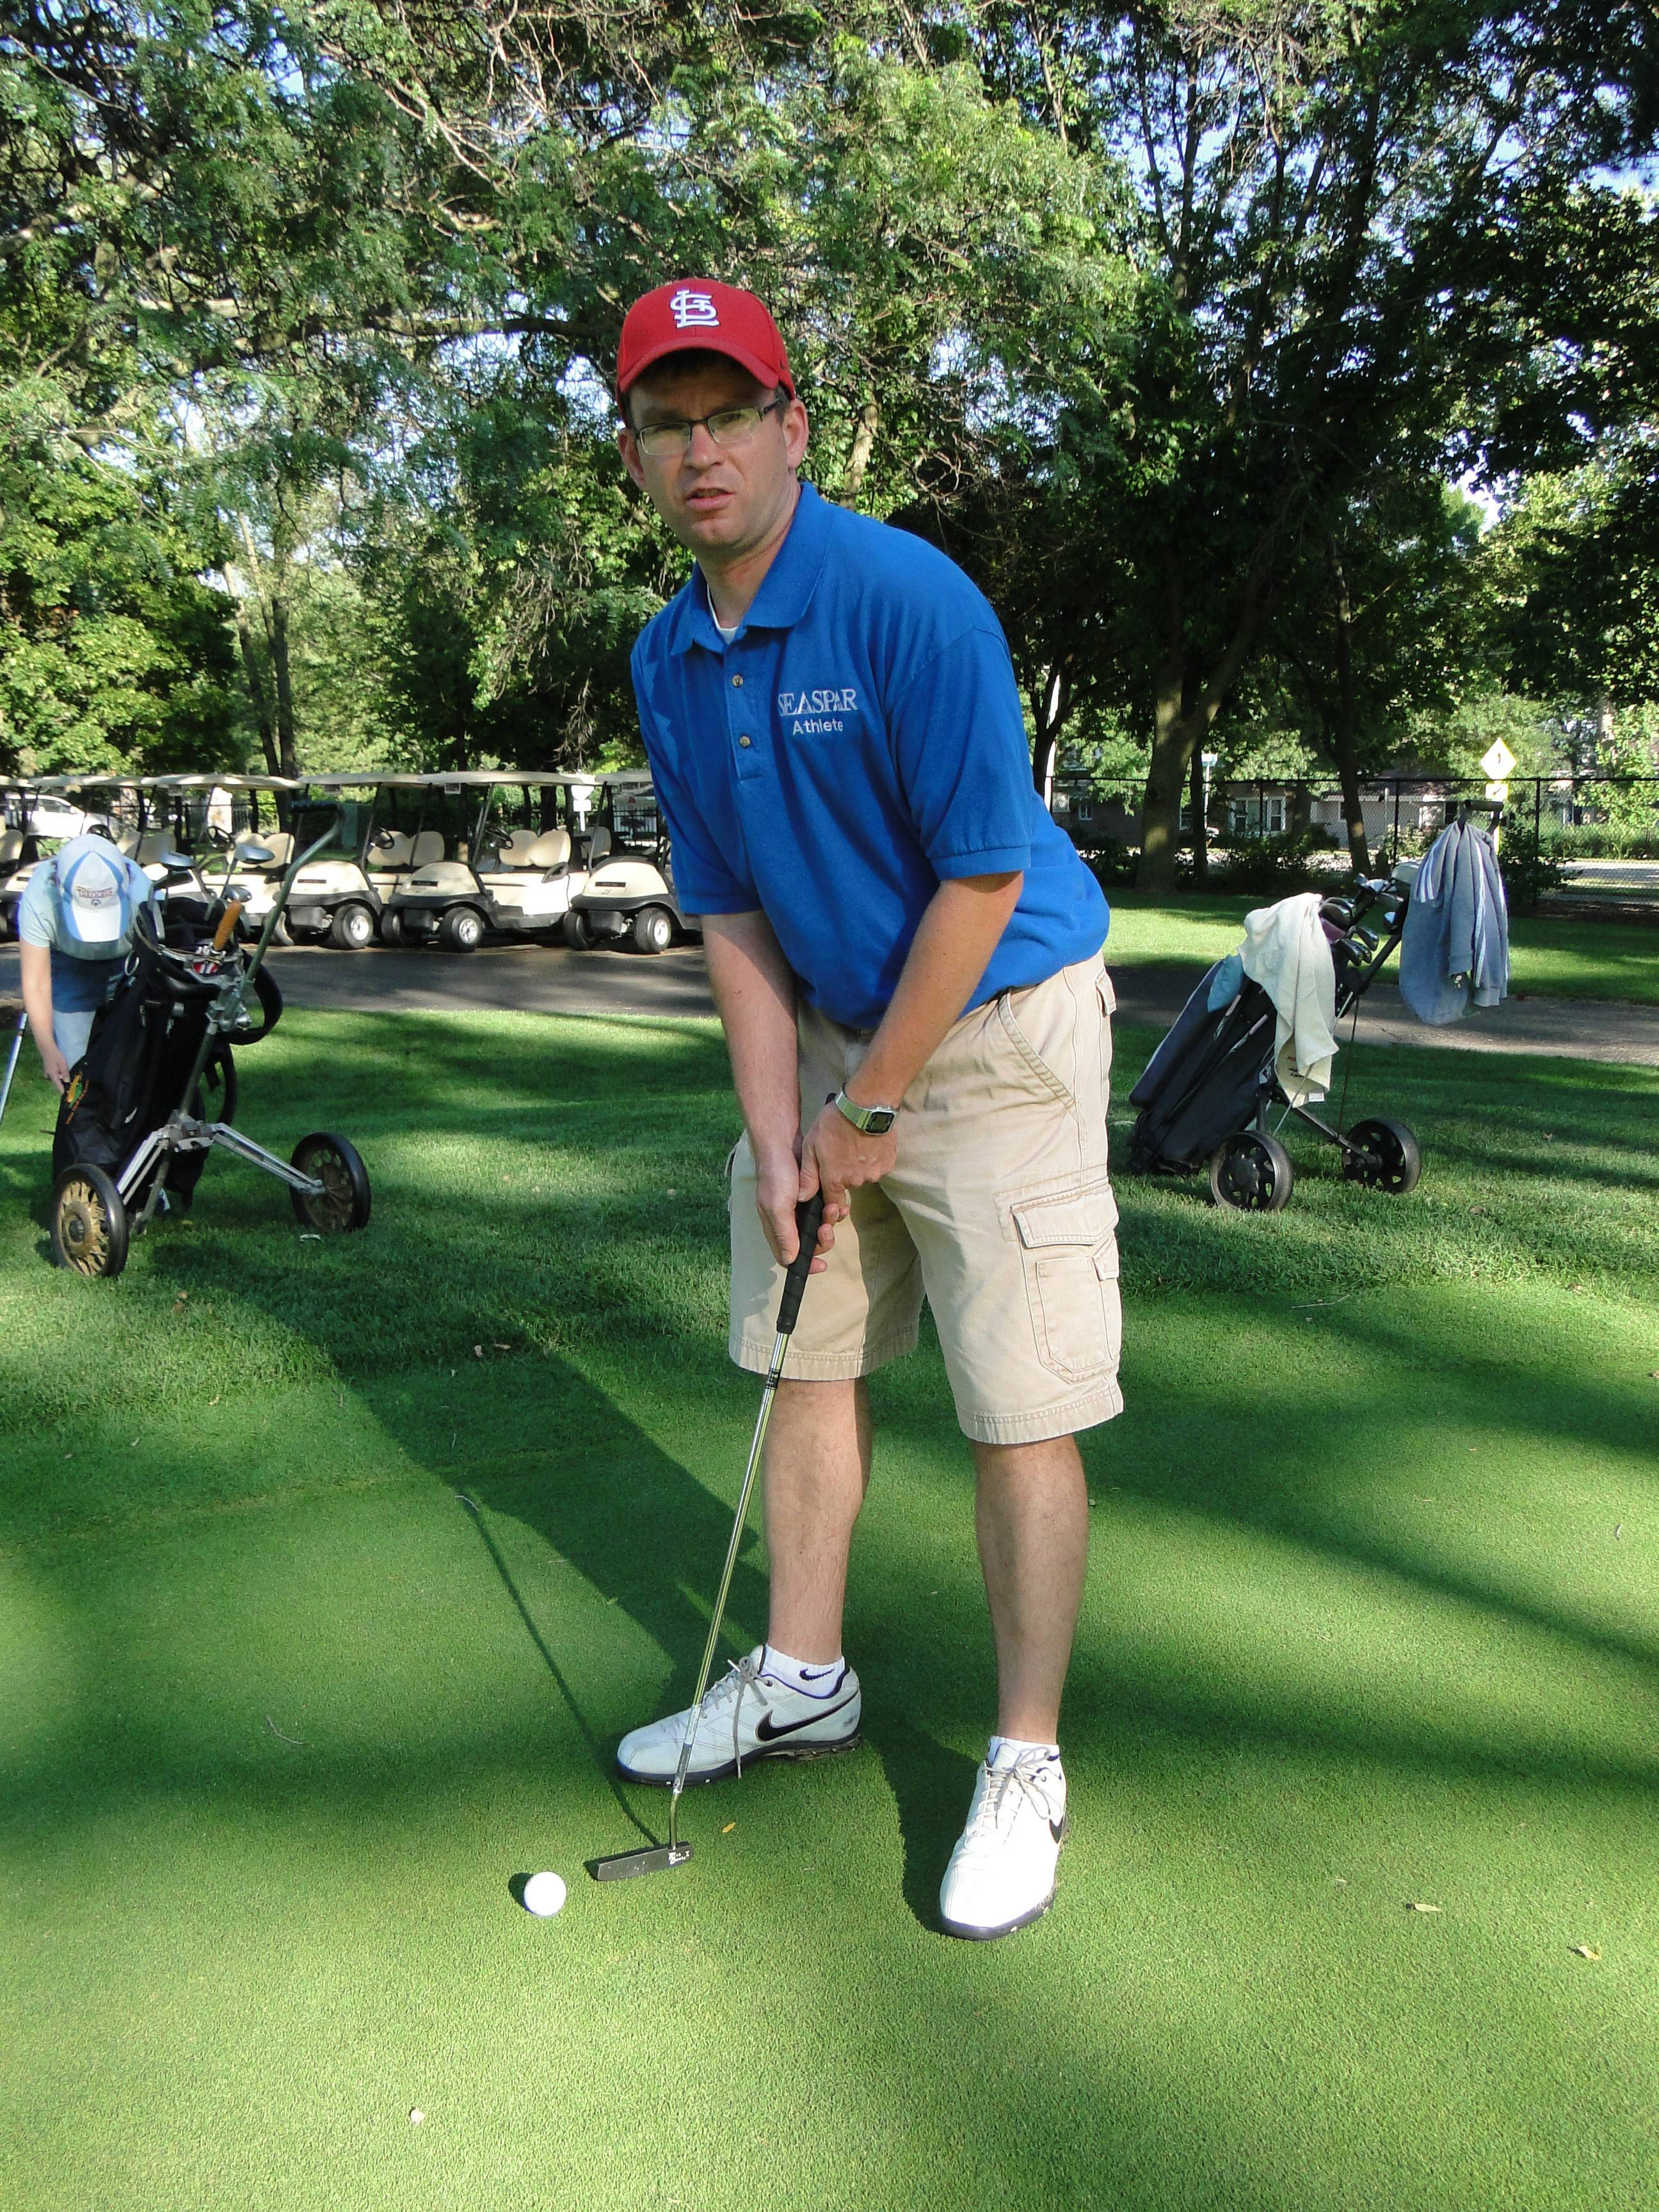 Downers Grove man perfect choice to represent Illinois at Special Olympics